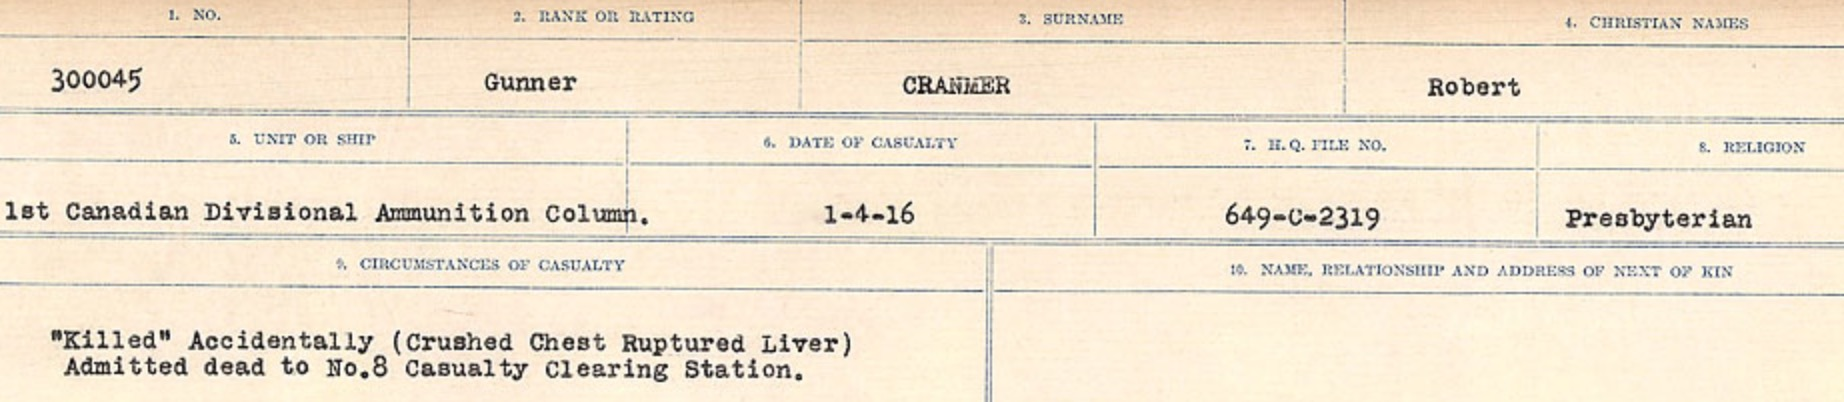 Circumstances of death registers– Source: Library and Archives Canada. CIRCUMSTANCES OF DEATH REGISTERS, FIRST WORLD WAR Surnames: CRABB TO CROSSLAND Microform Sequence 24; Volume Number 31829_B016733. Reference RG150, 1992-93/314, 168. Page 255 of 788.